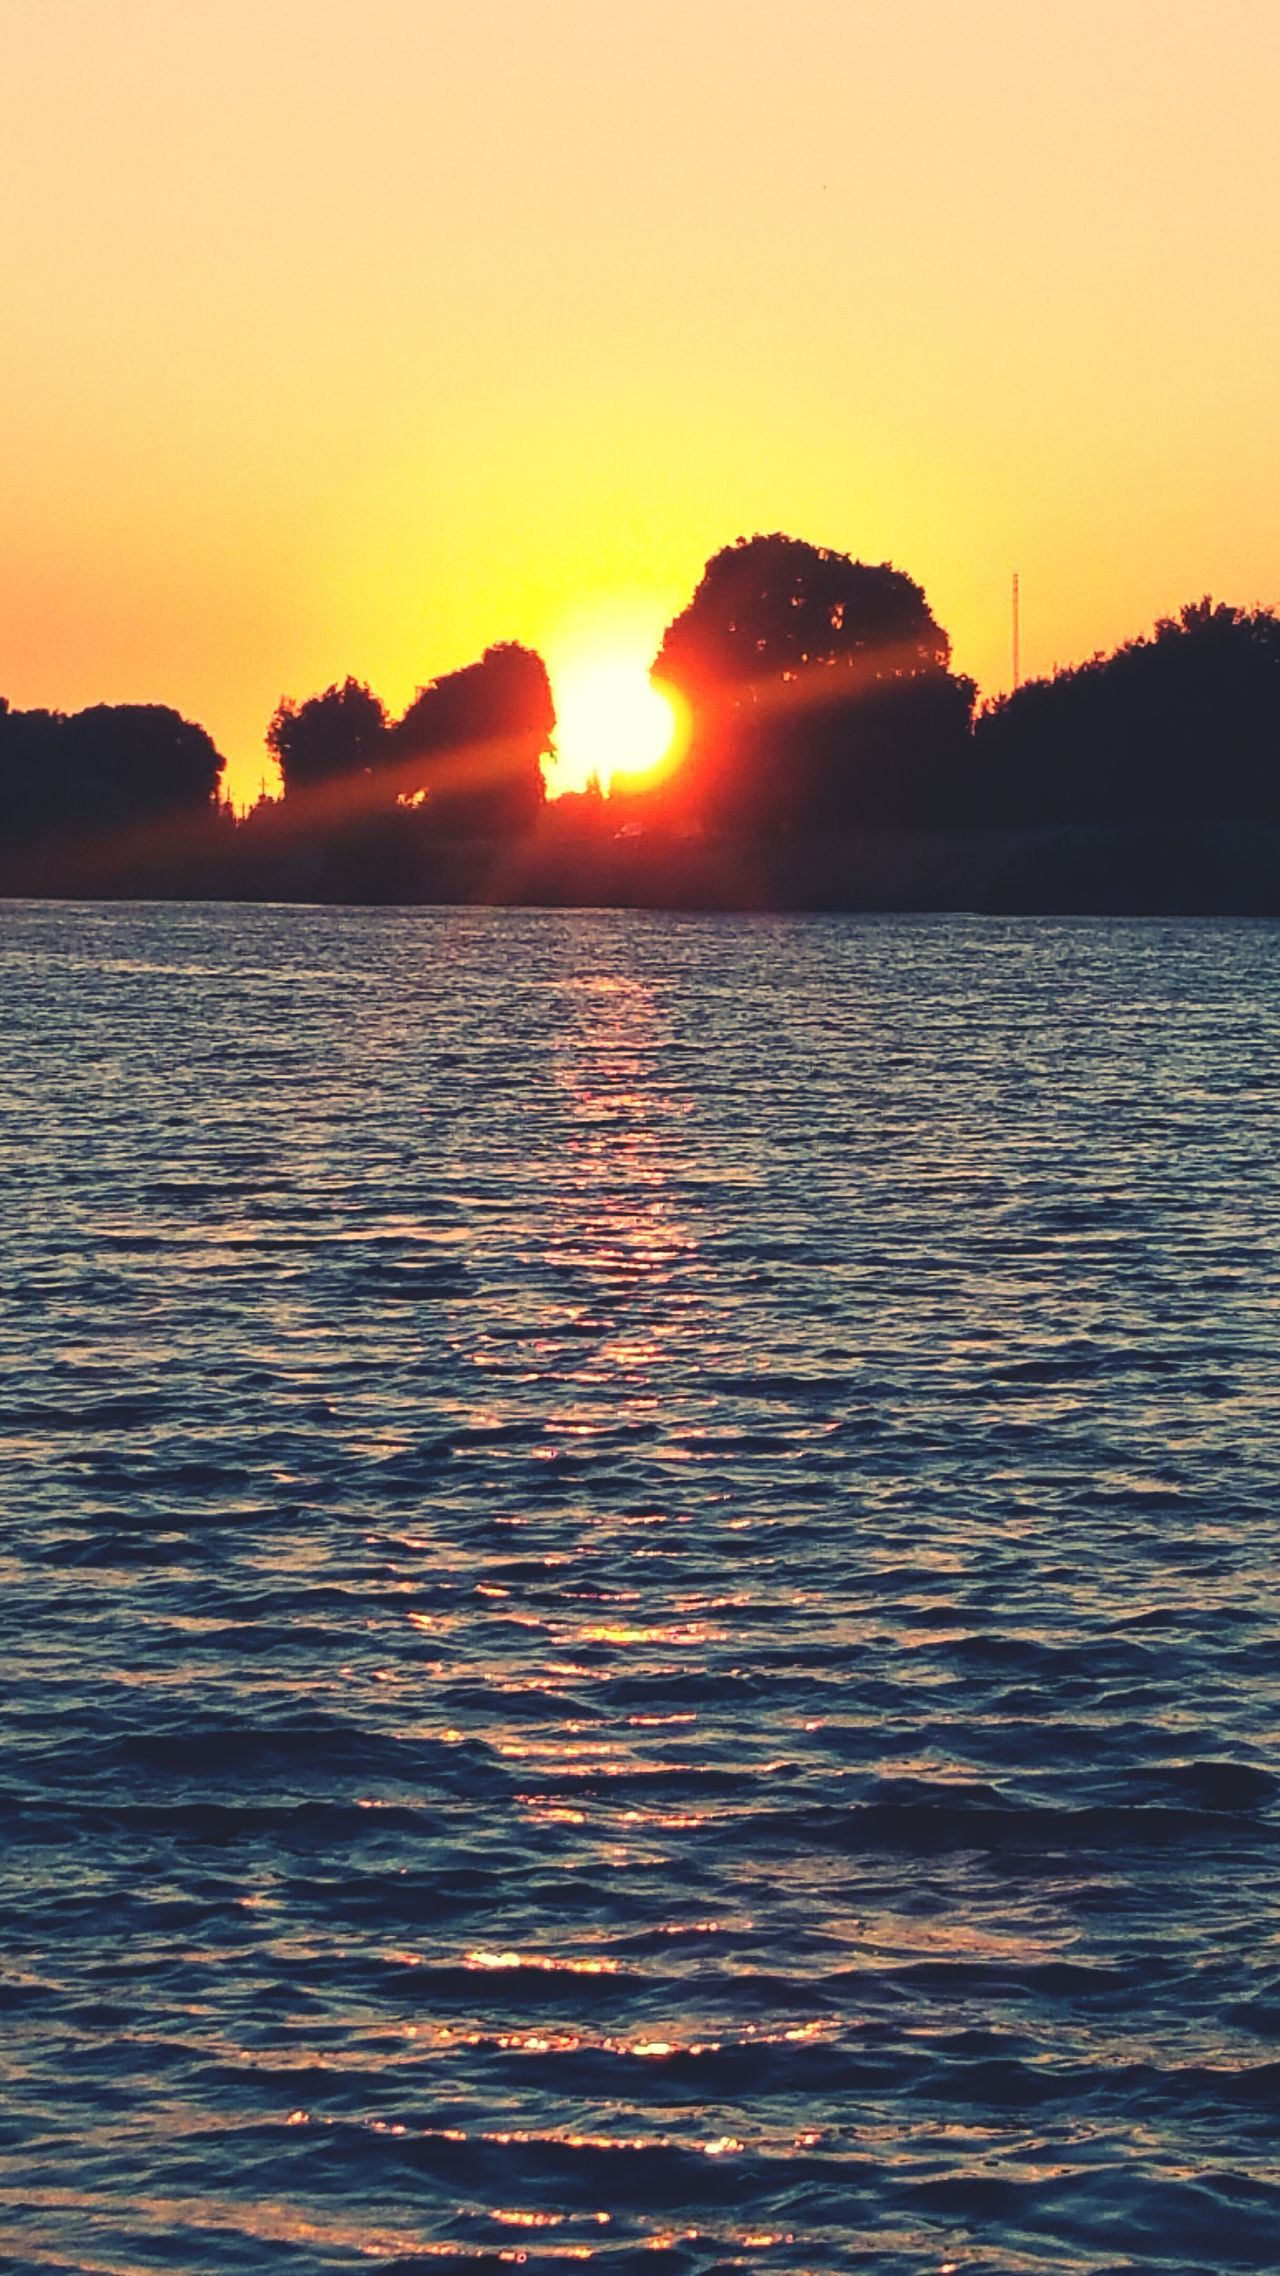 Sunset Water Sun Sea Beauty In Nature Vibrant Color Sacramento River Blessed  Nature Family Vacation Majestic Happy